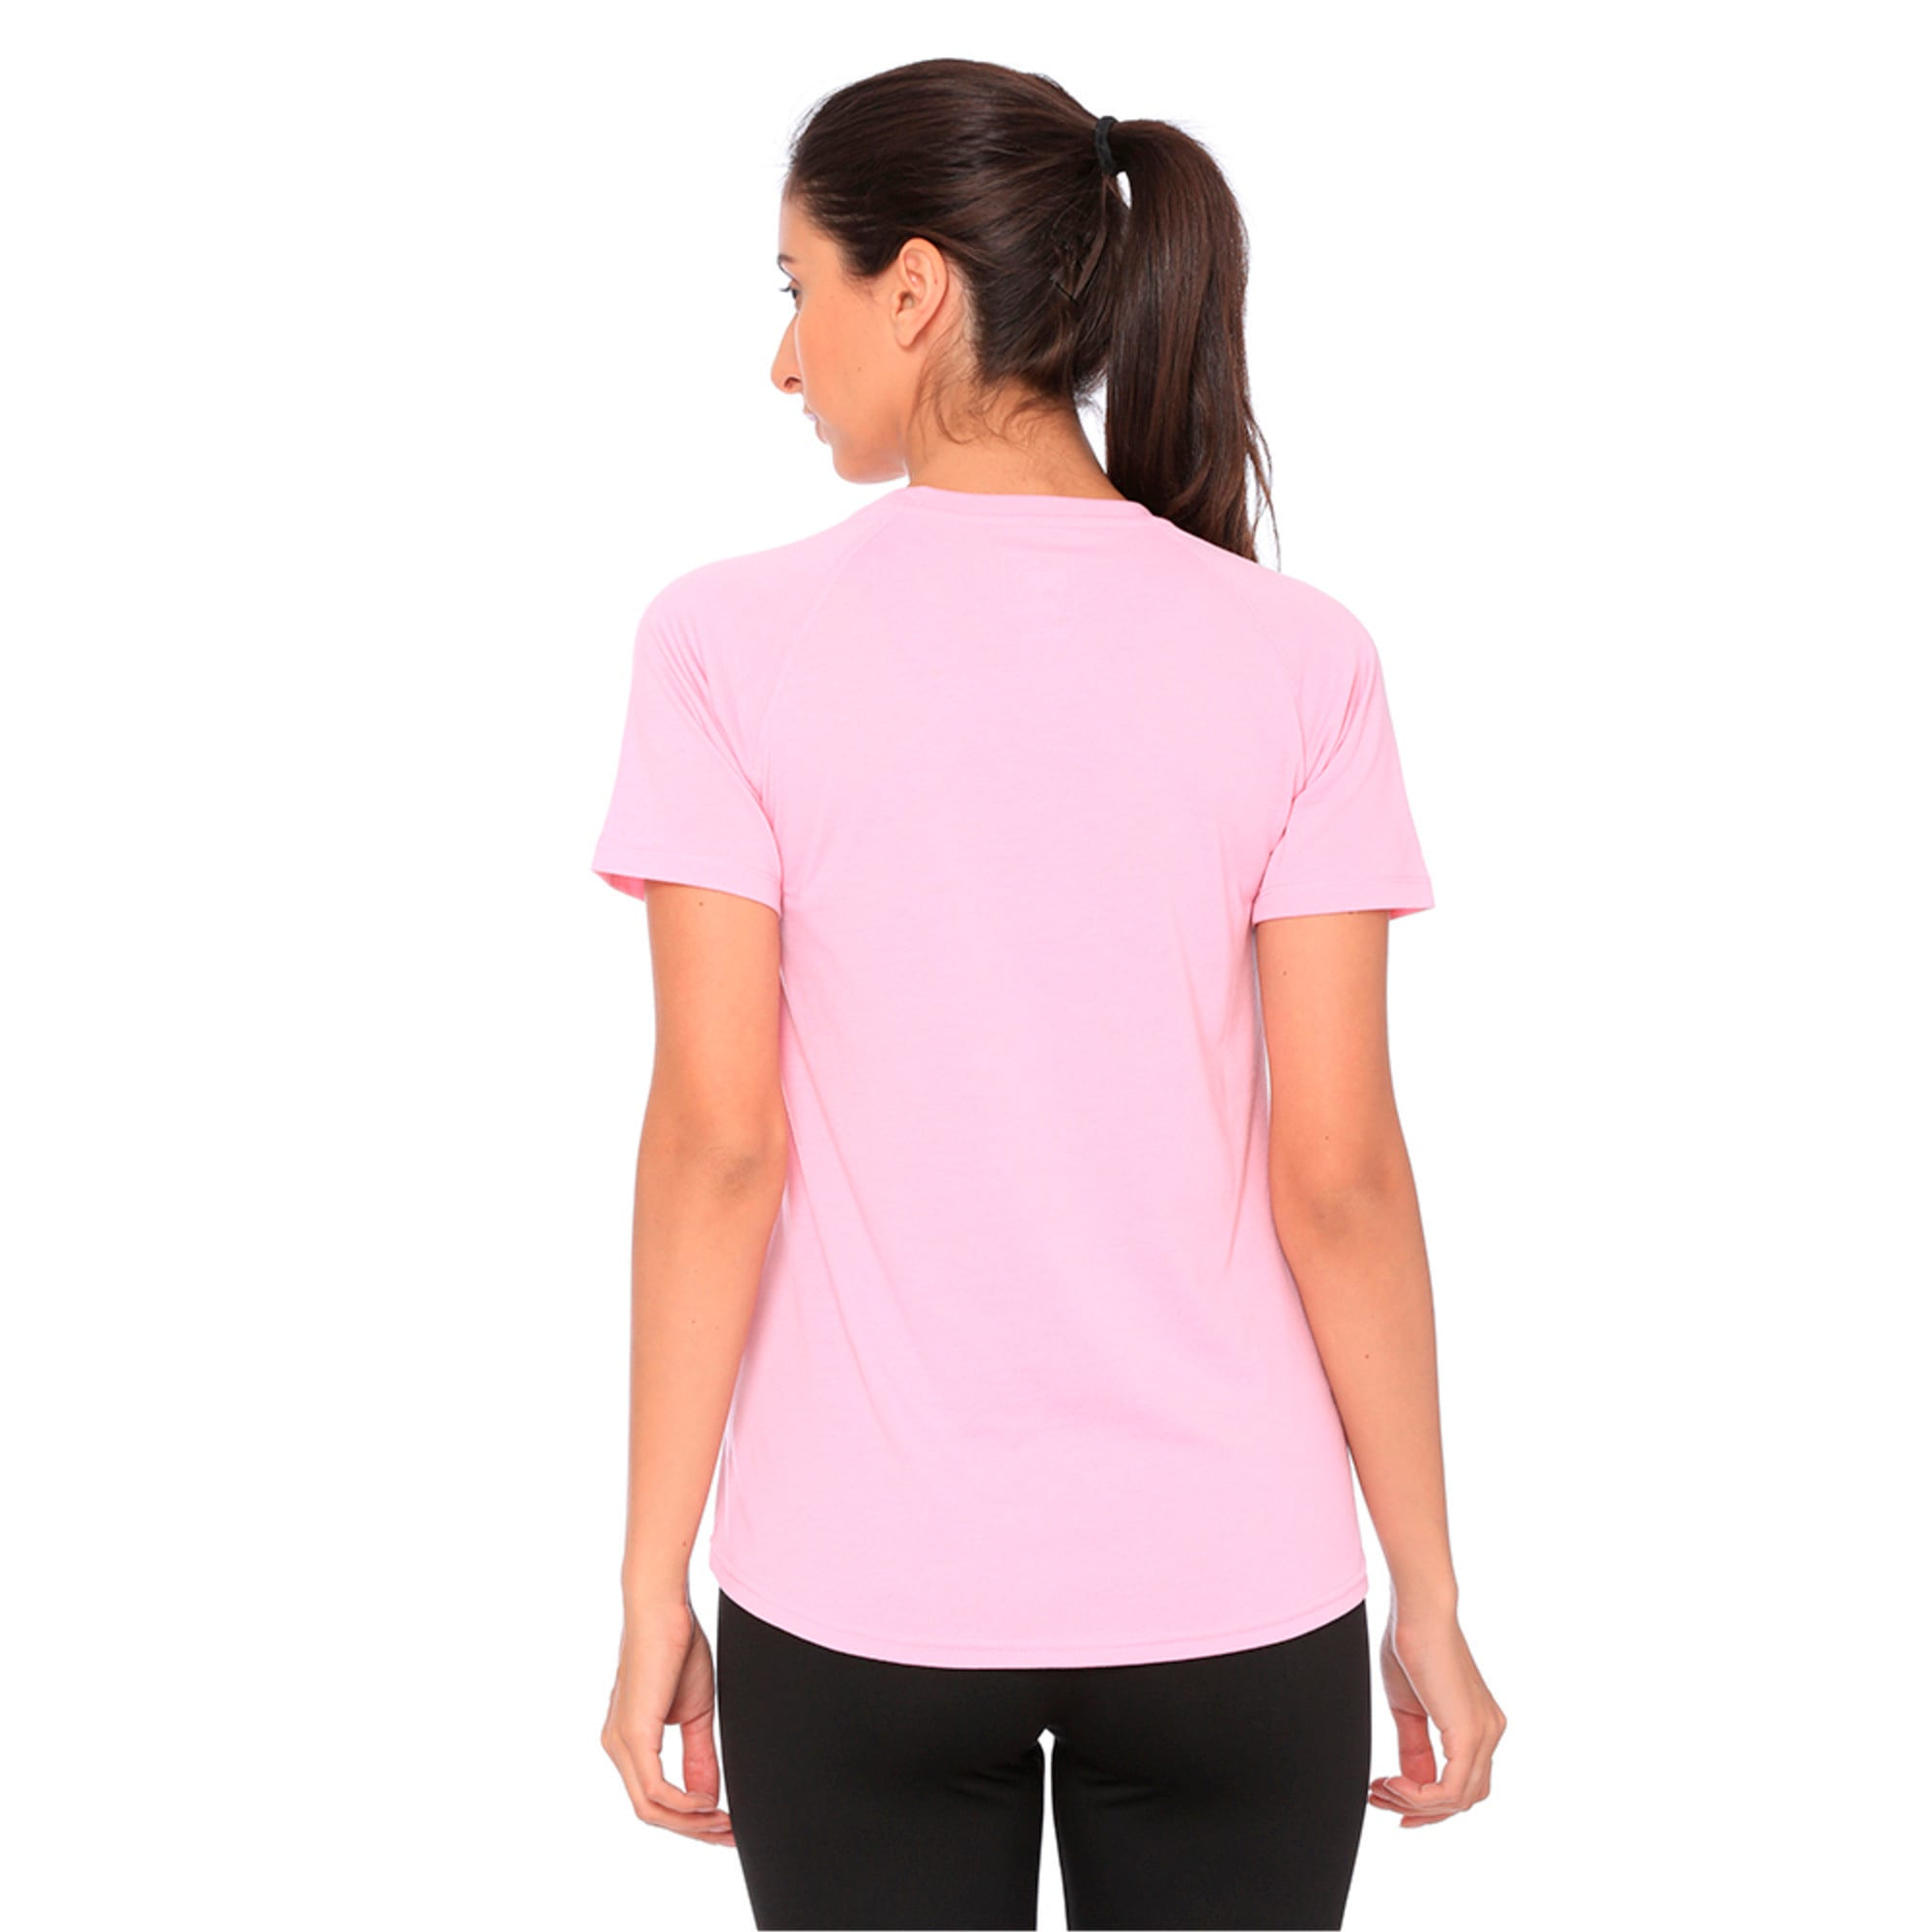 A.C.E. Raglan Tee, Pale Pink, large-IND